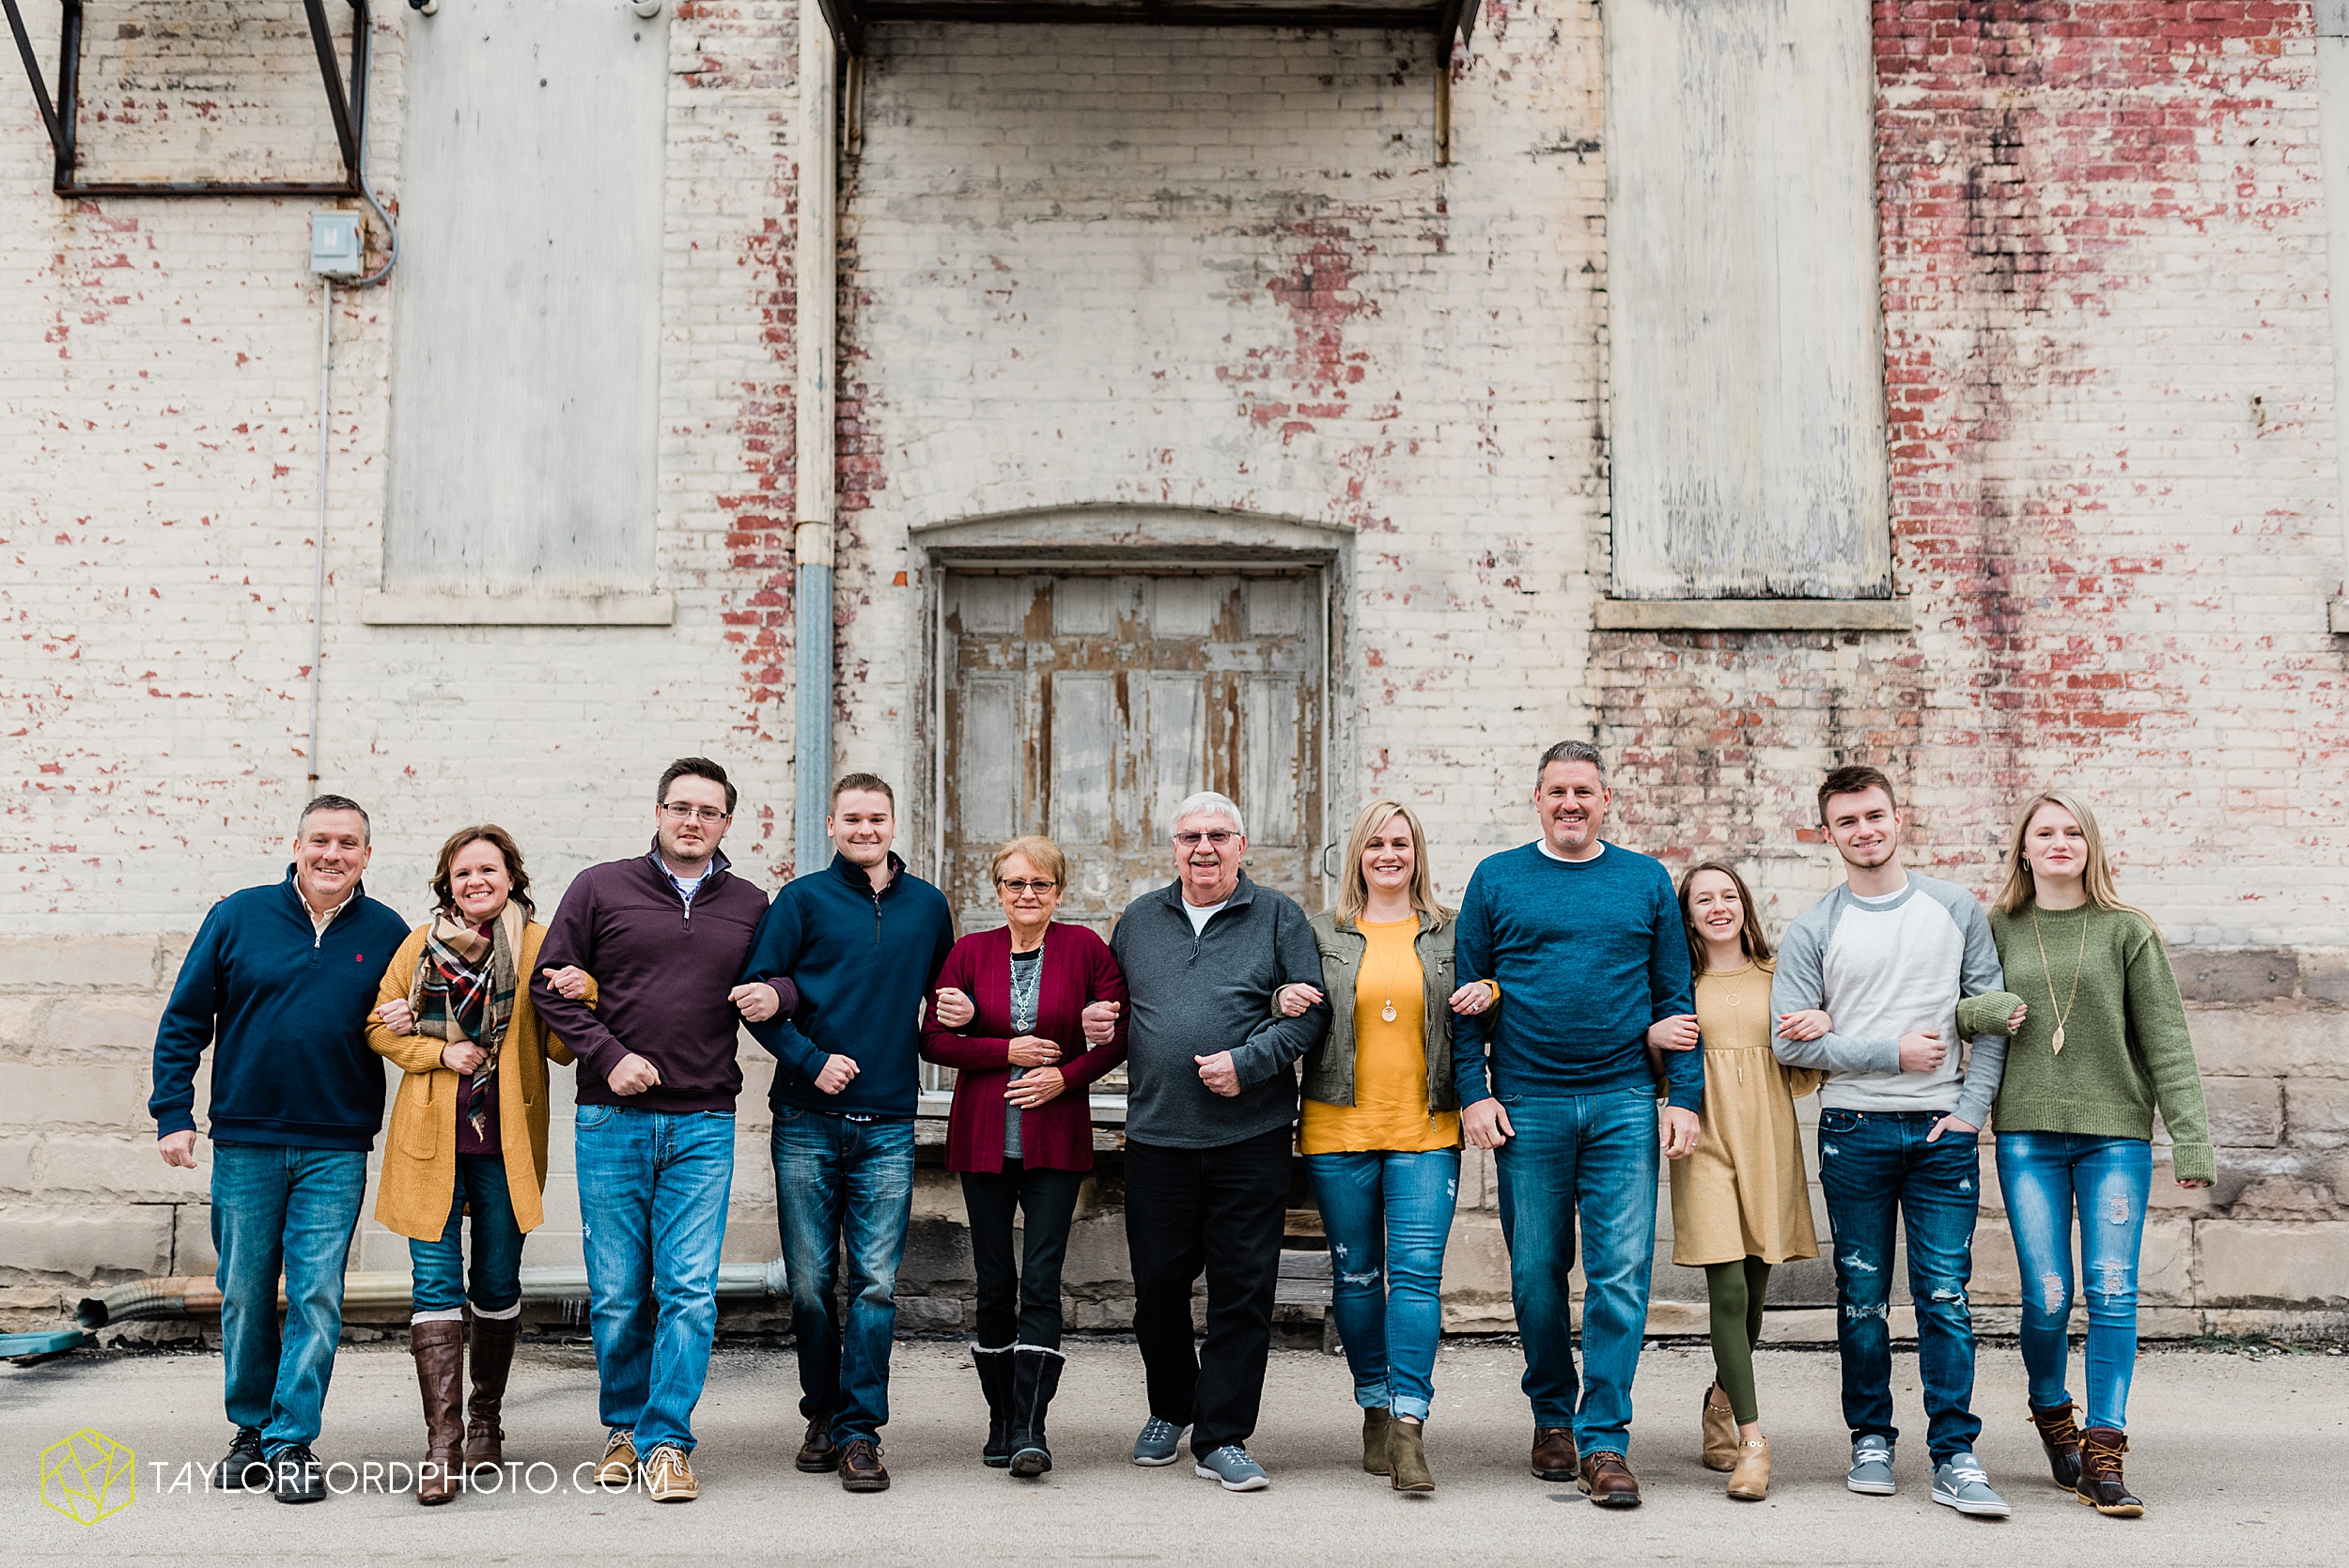 thompson-extended-family-van-wert-ohio-downtown-family-photography-taylor-ford-hirschy-photographer_2088.jpg